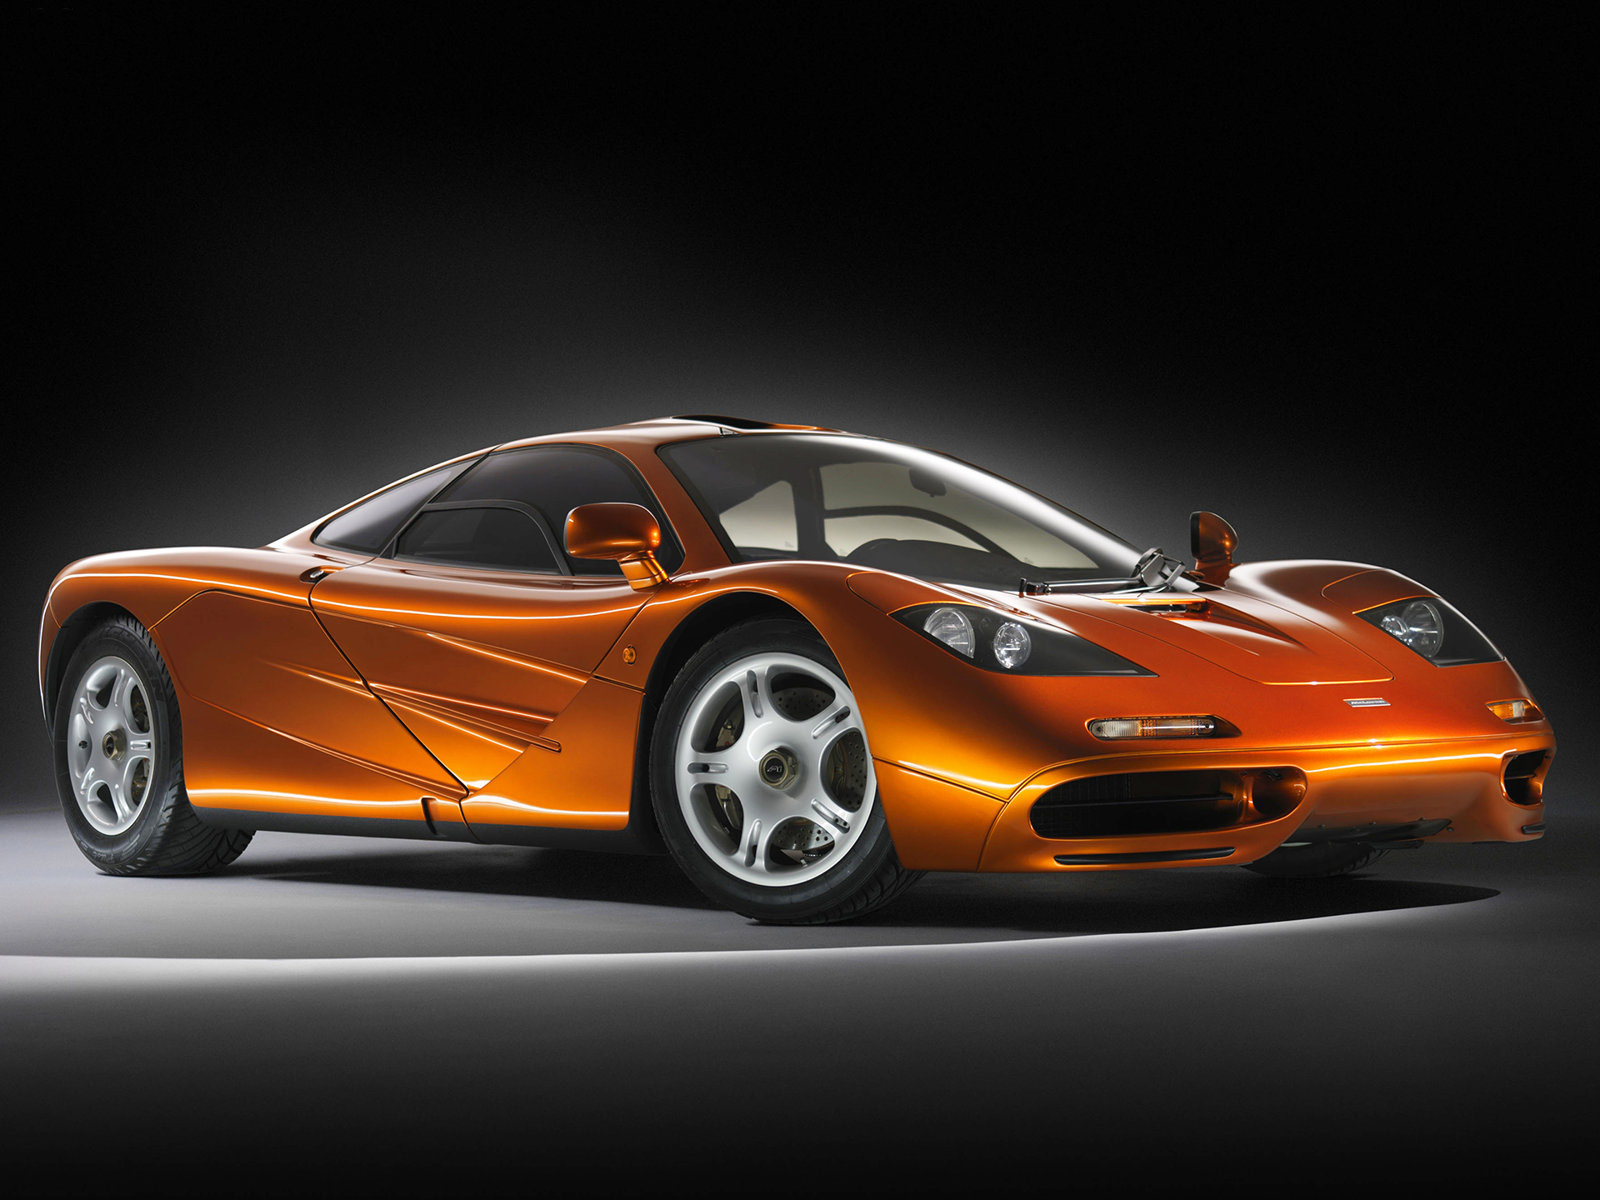 McLaren-F1 car Photo Gallery Desktop Backgrounds